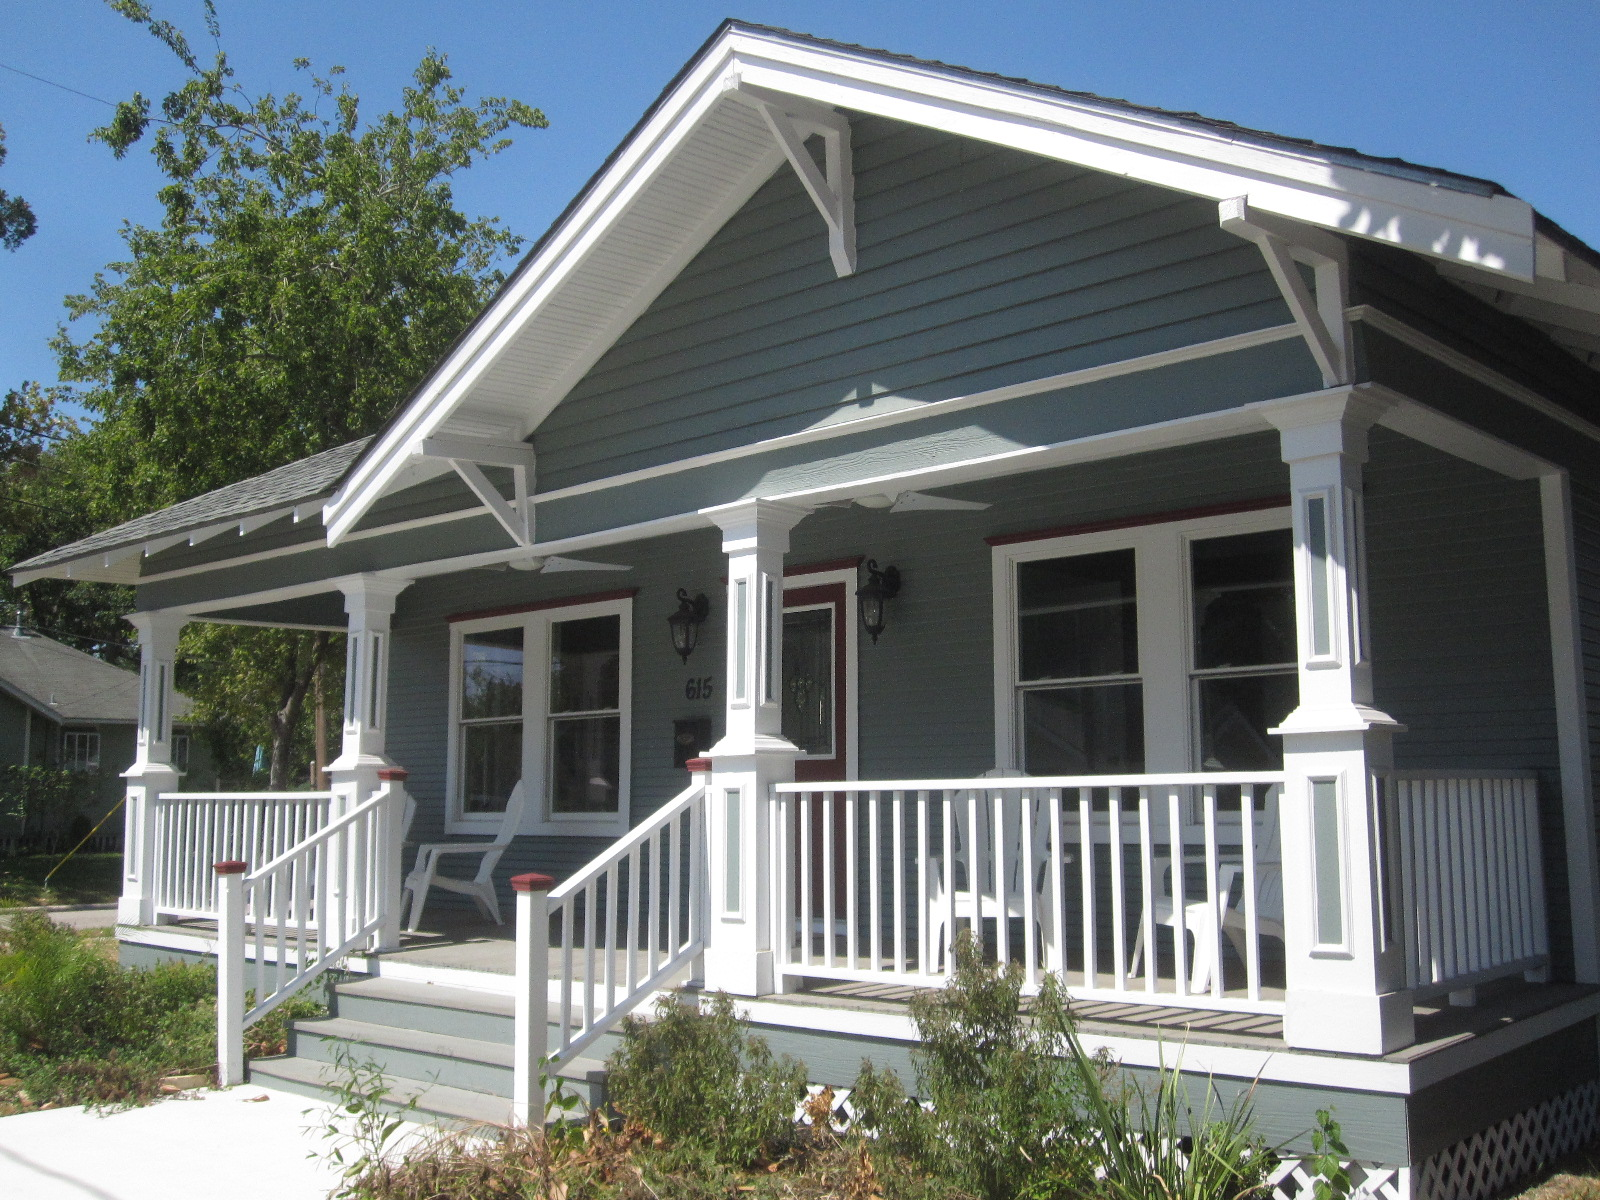 The other houston cozy bungalow porches for Porch homes